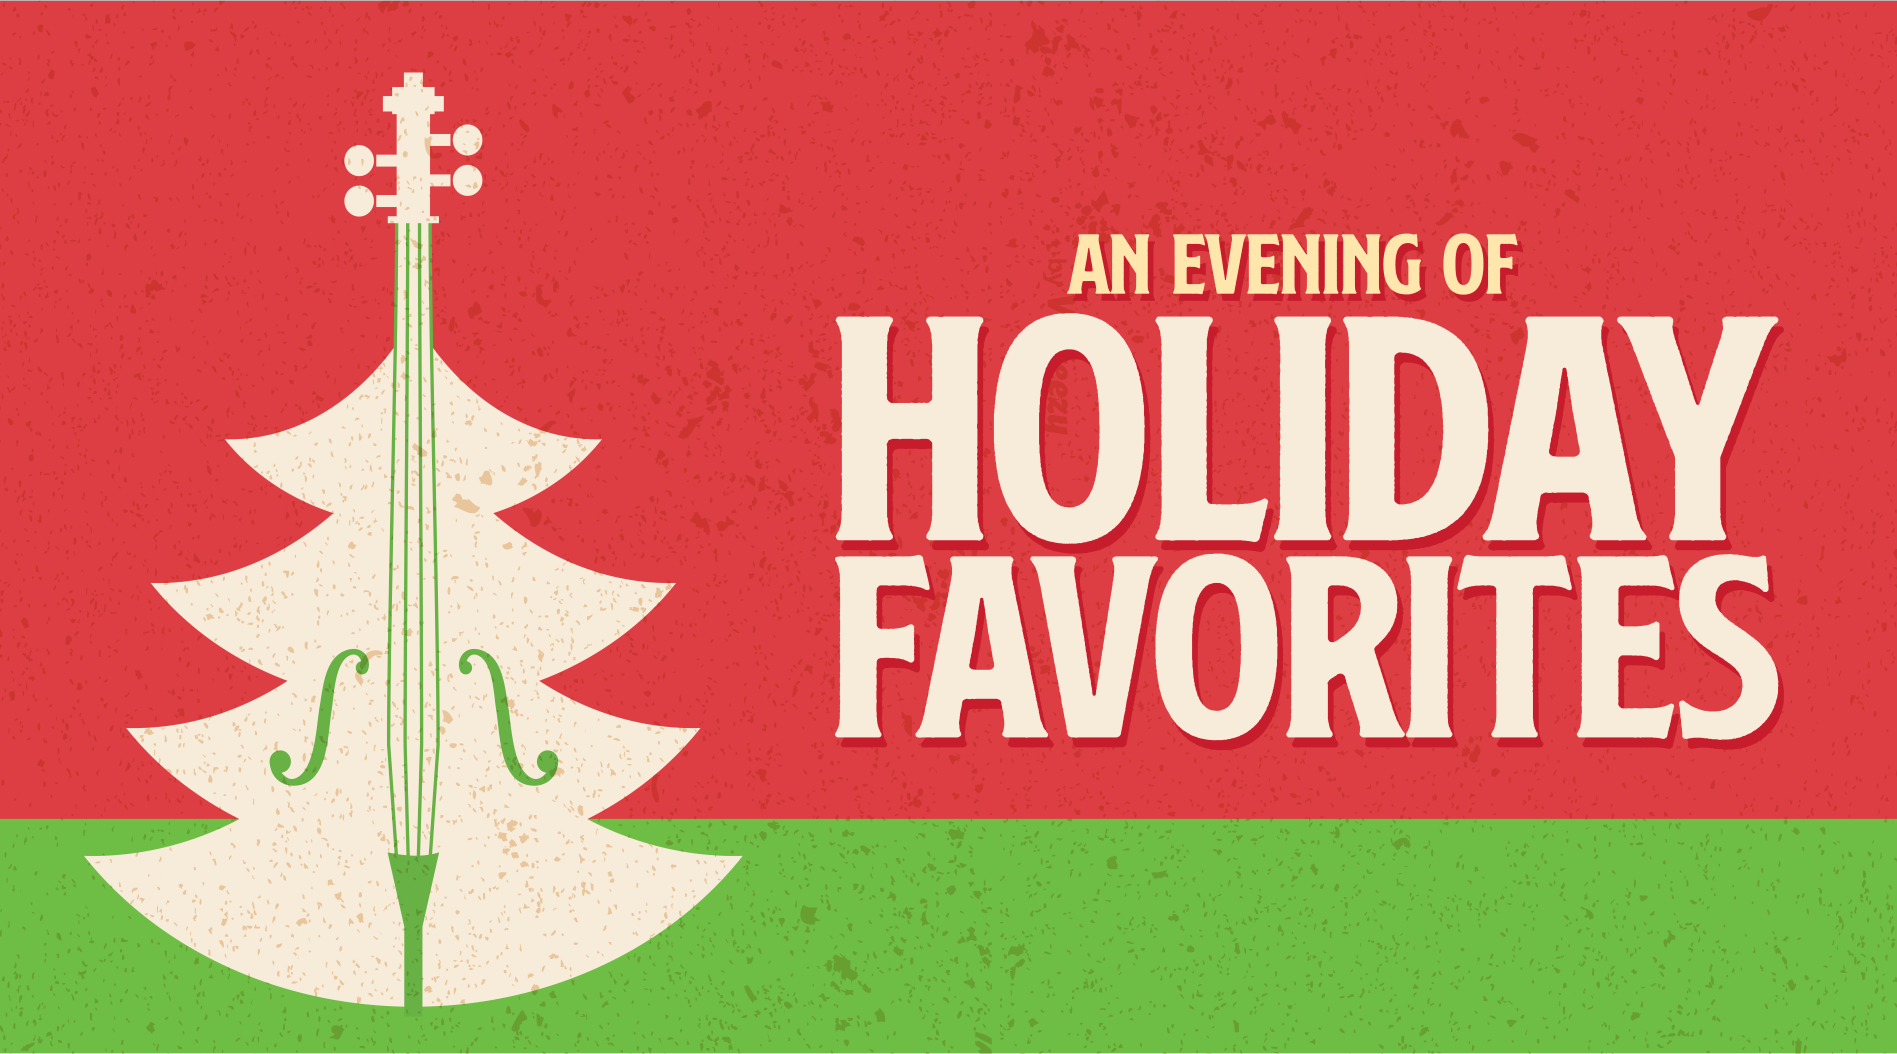 An Evening of Holiday Favorites